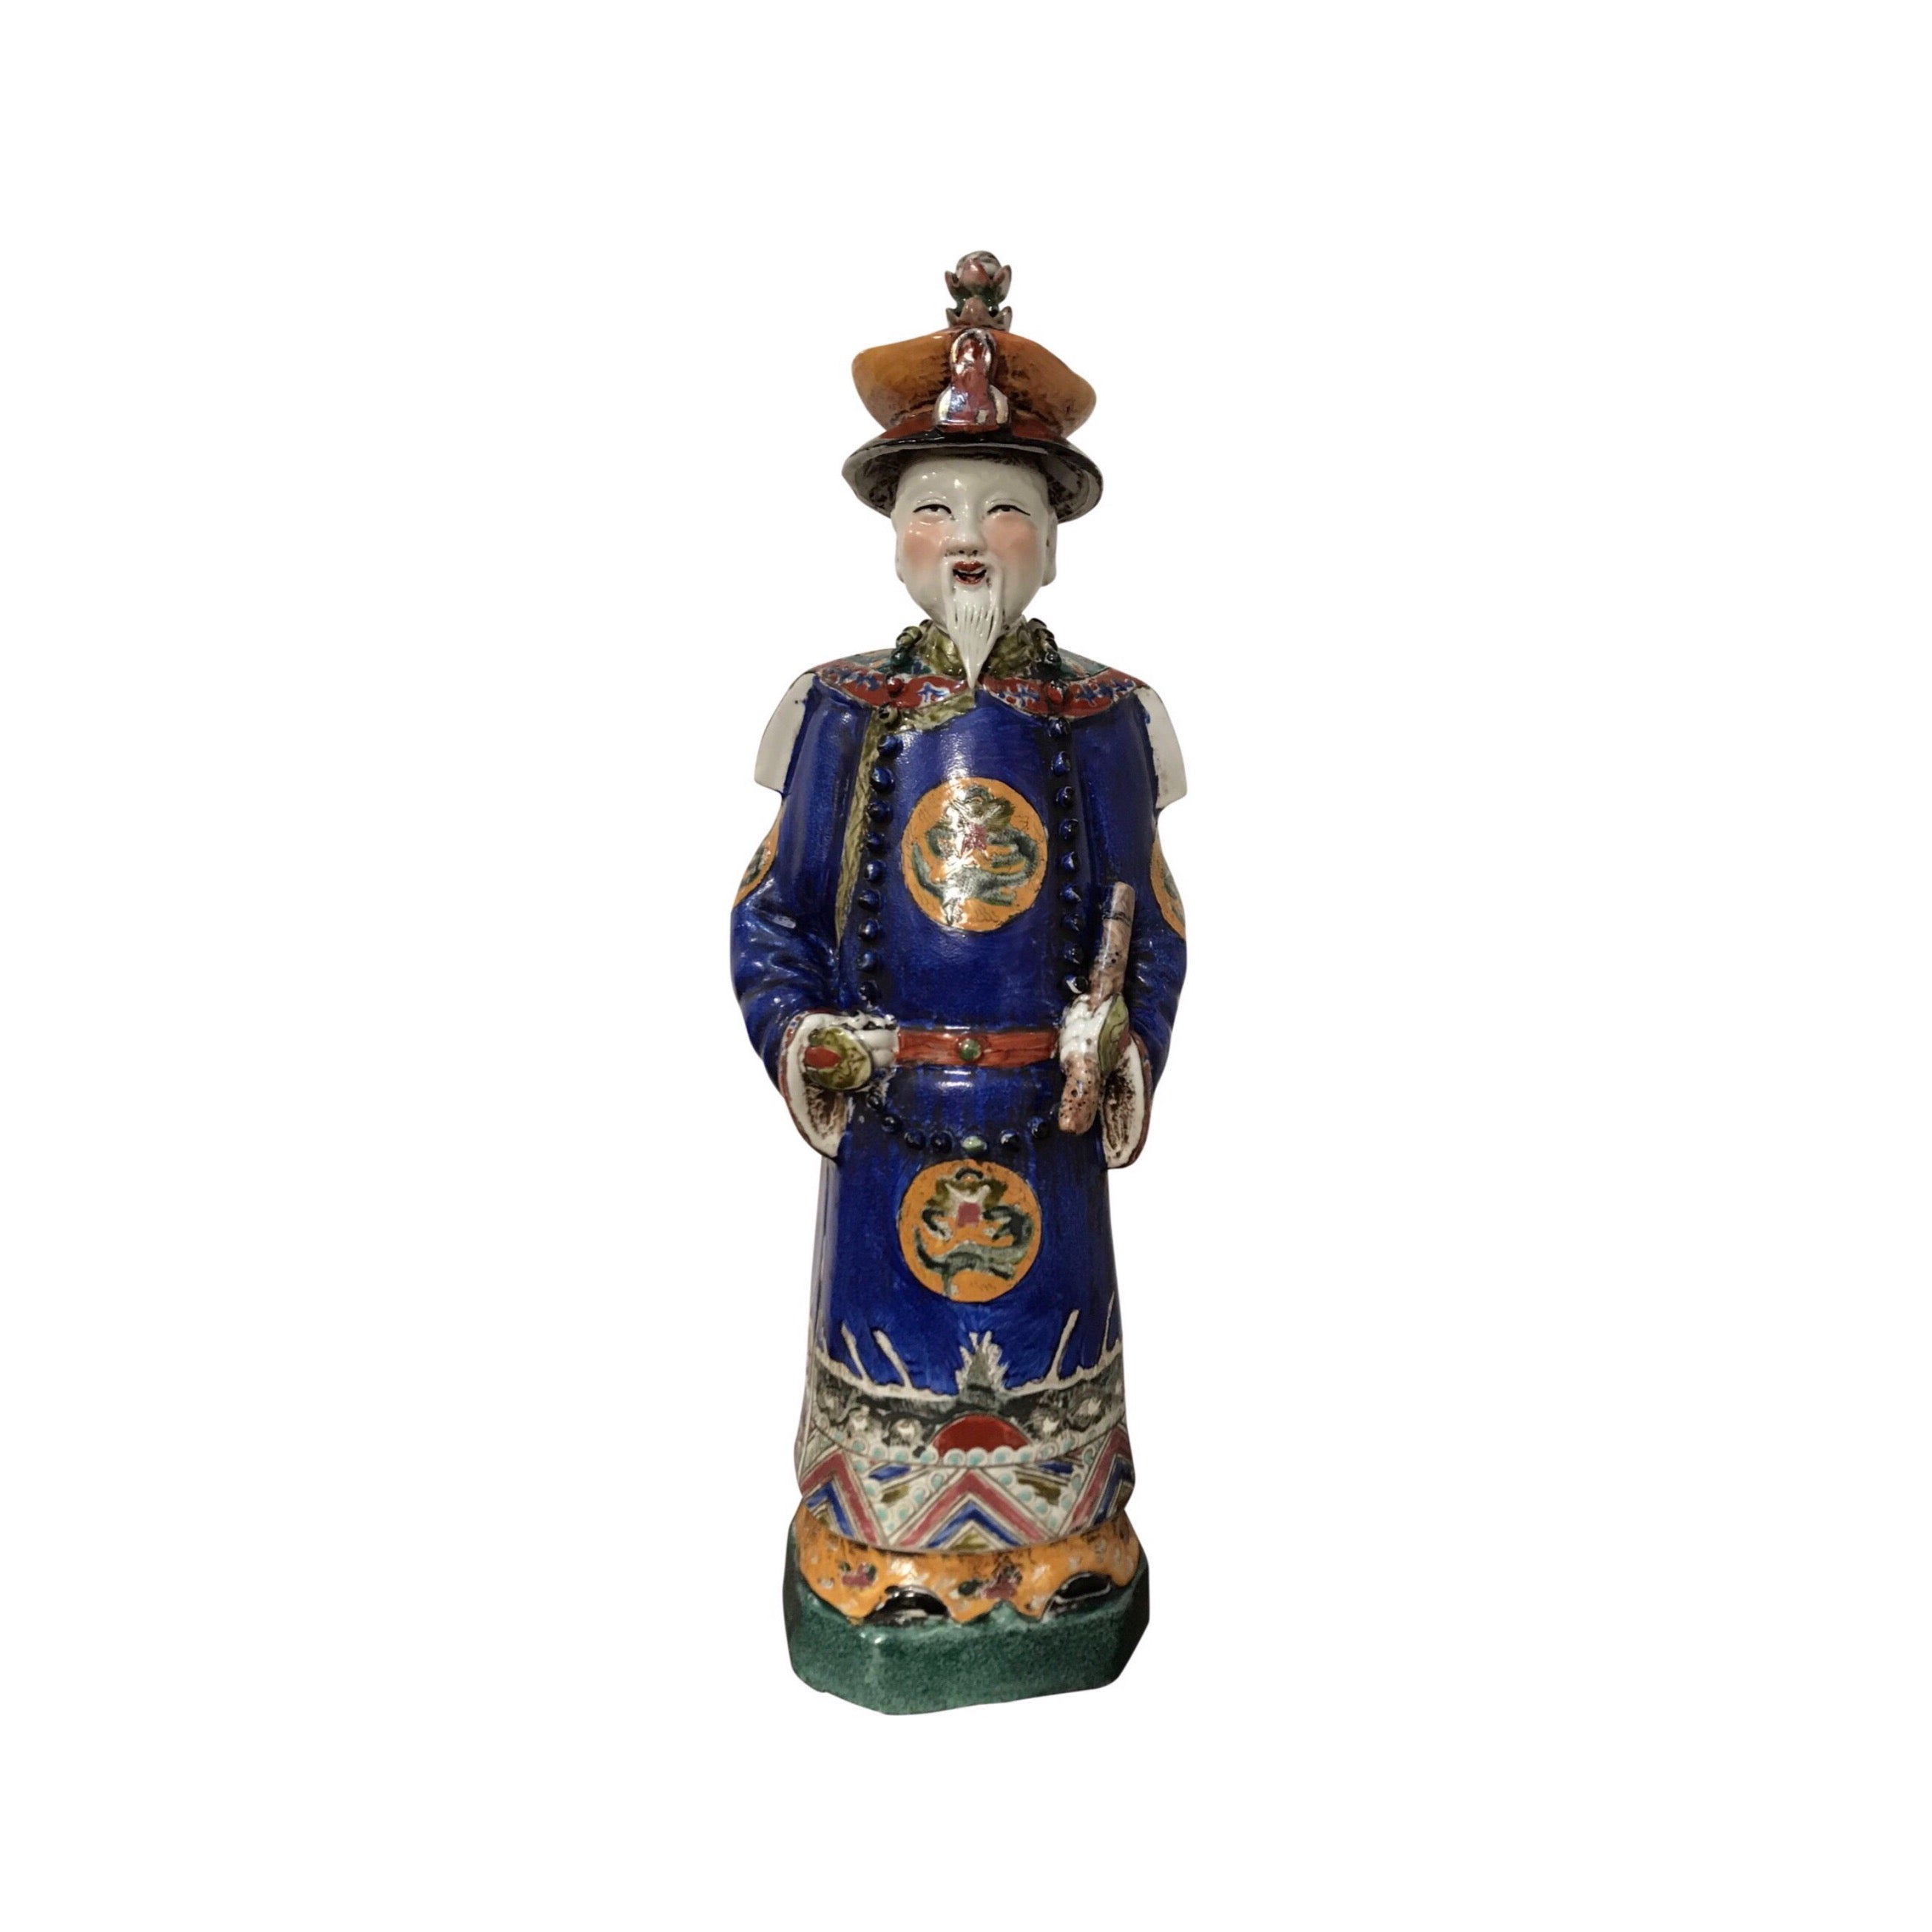 1900s Antique Chinese Multicolor Porcelain King Figure